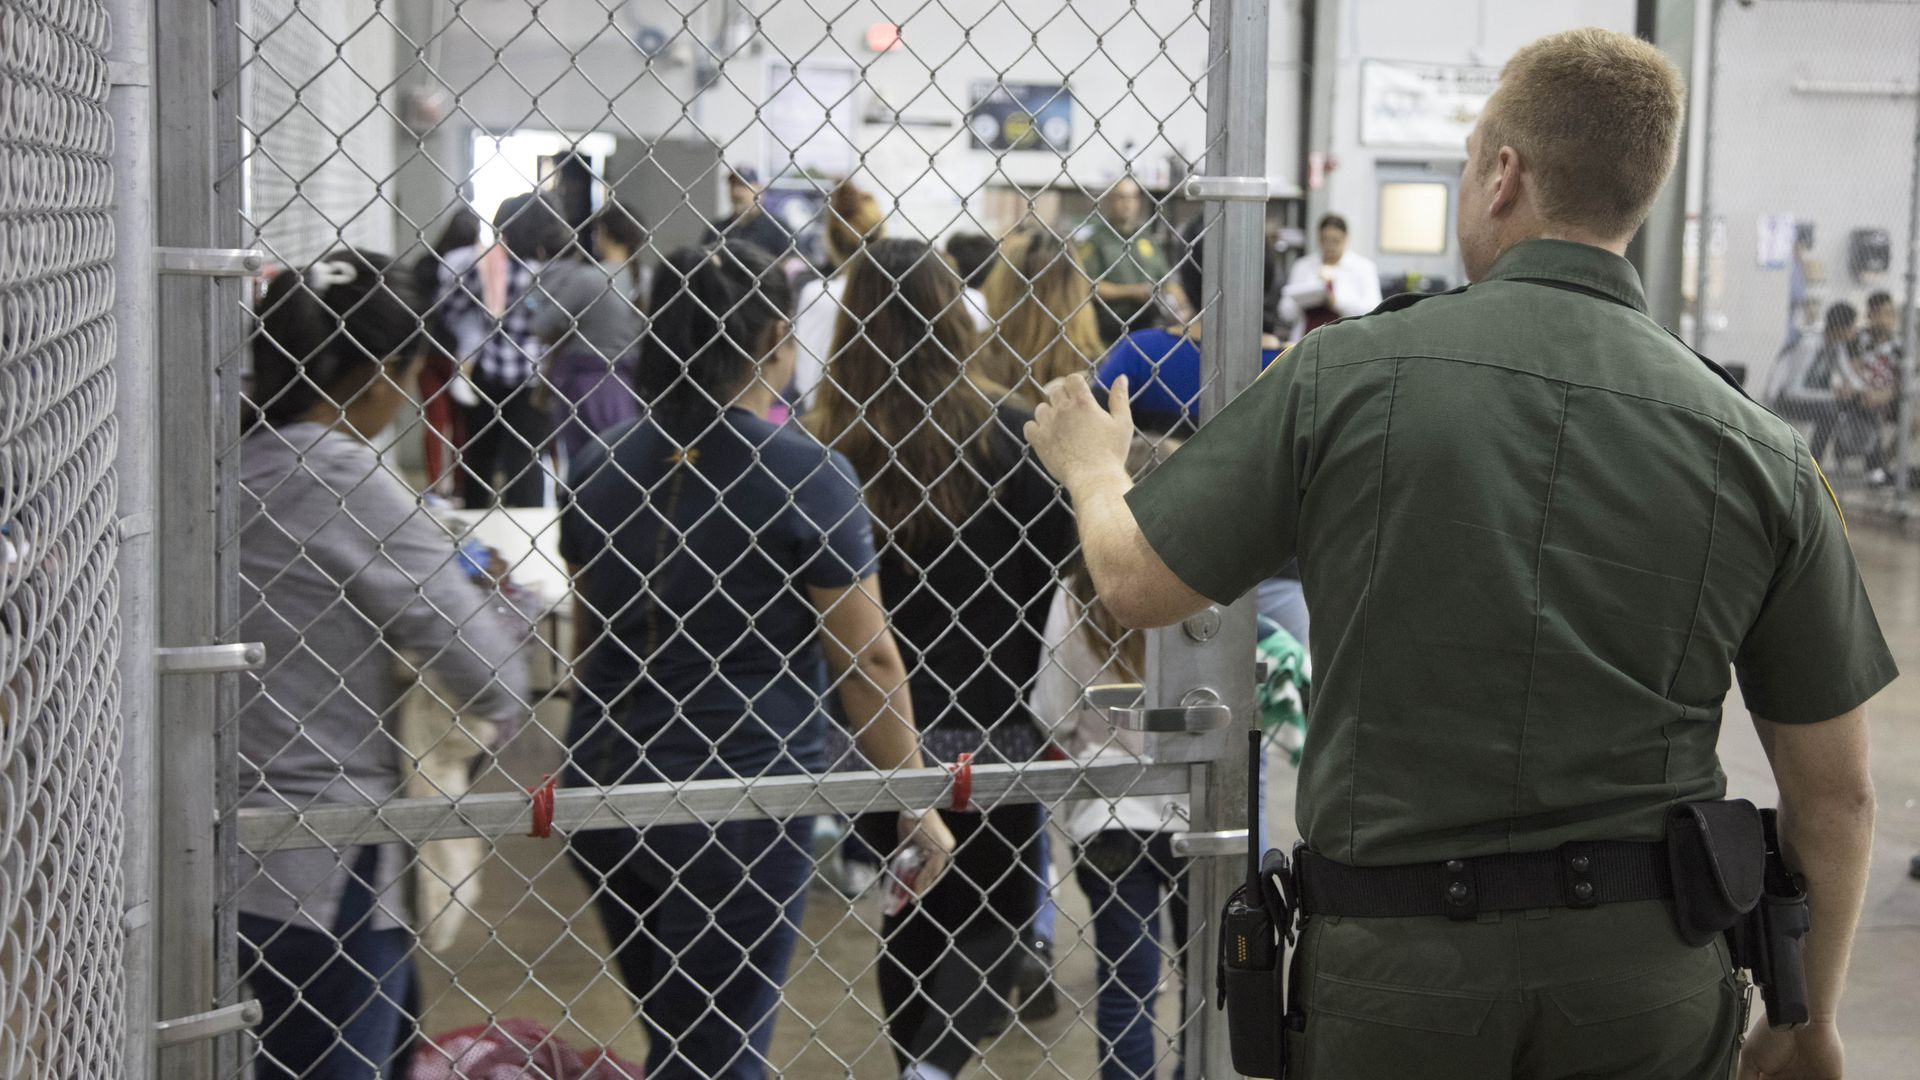 In this image, a CBP officer is seen from behind, closing a gated door.